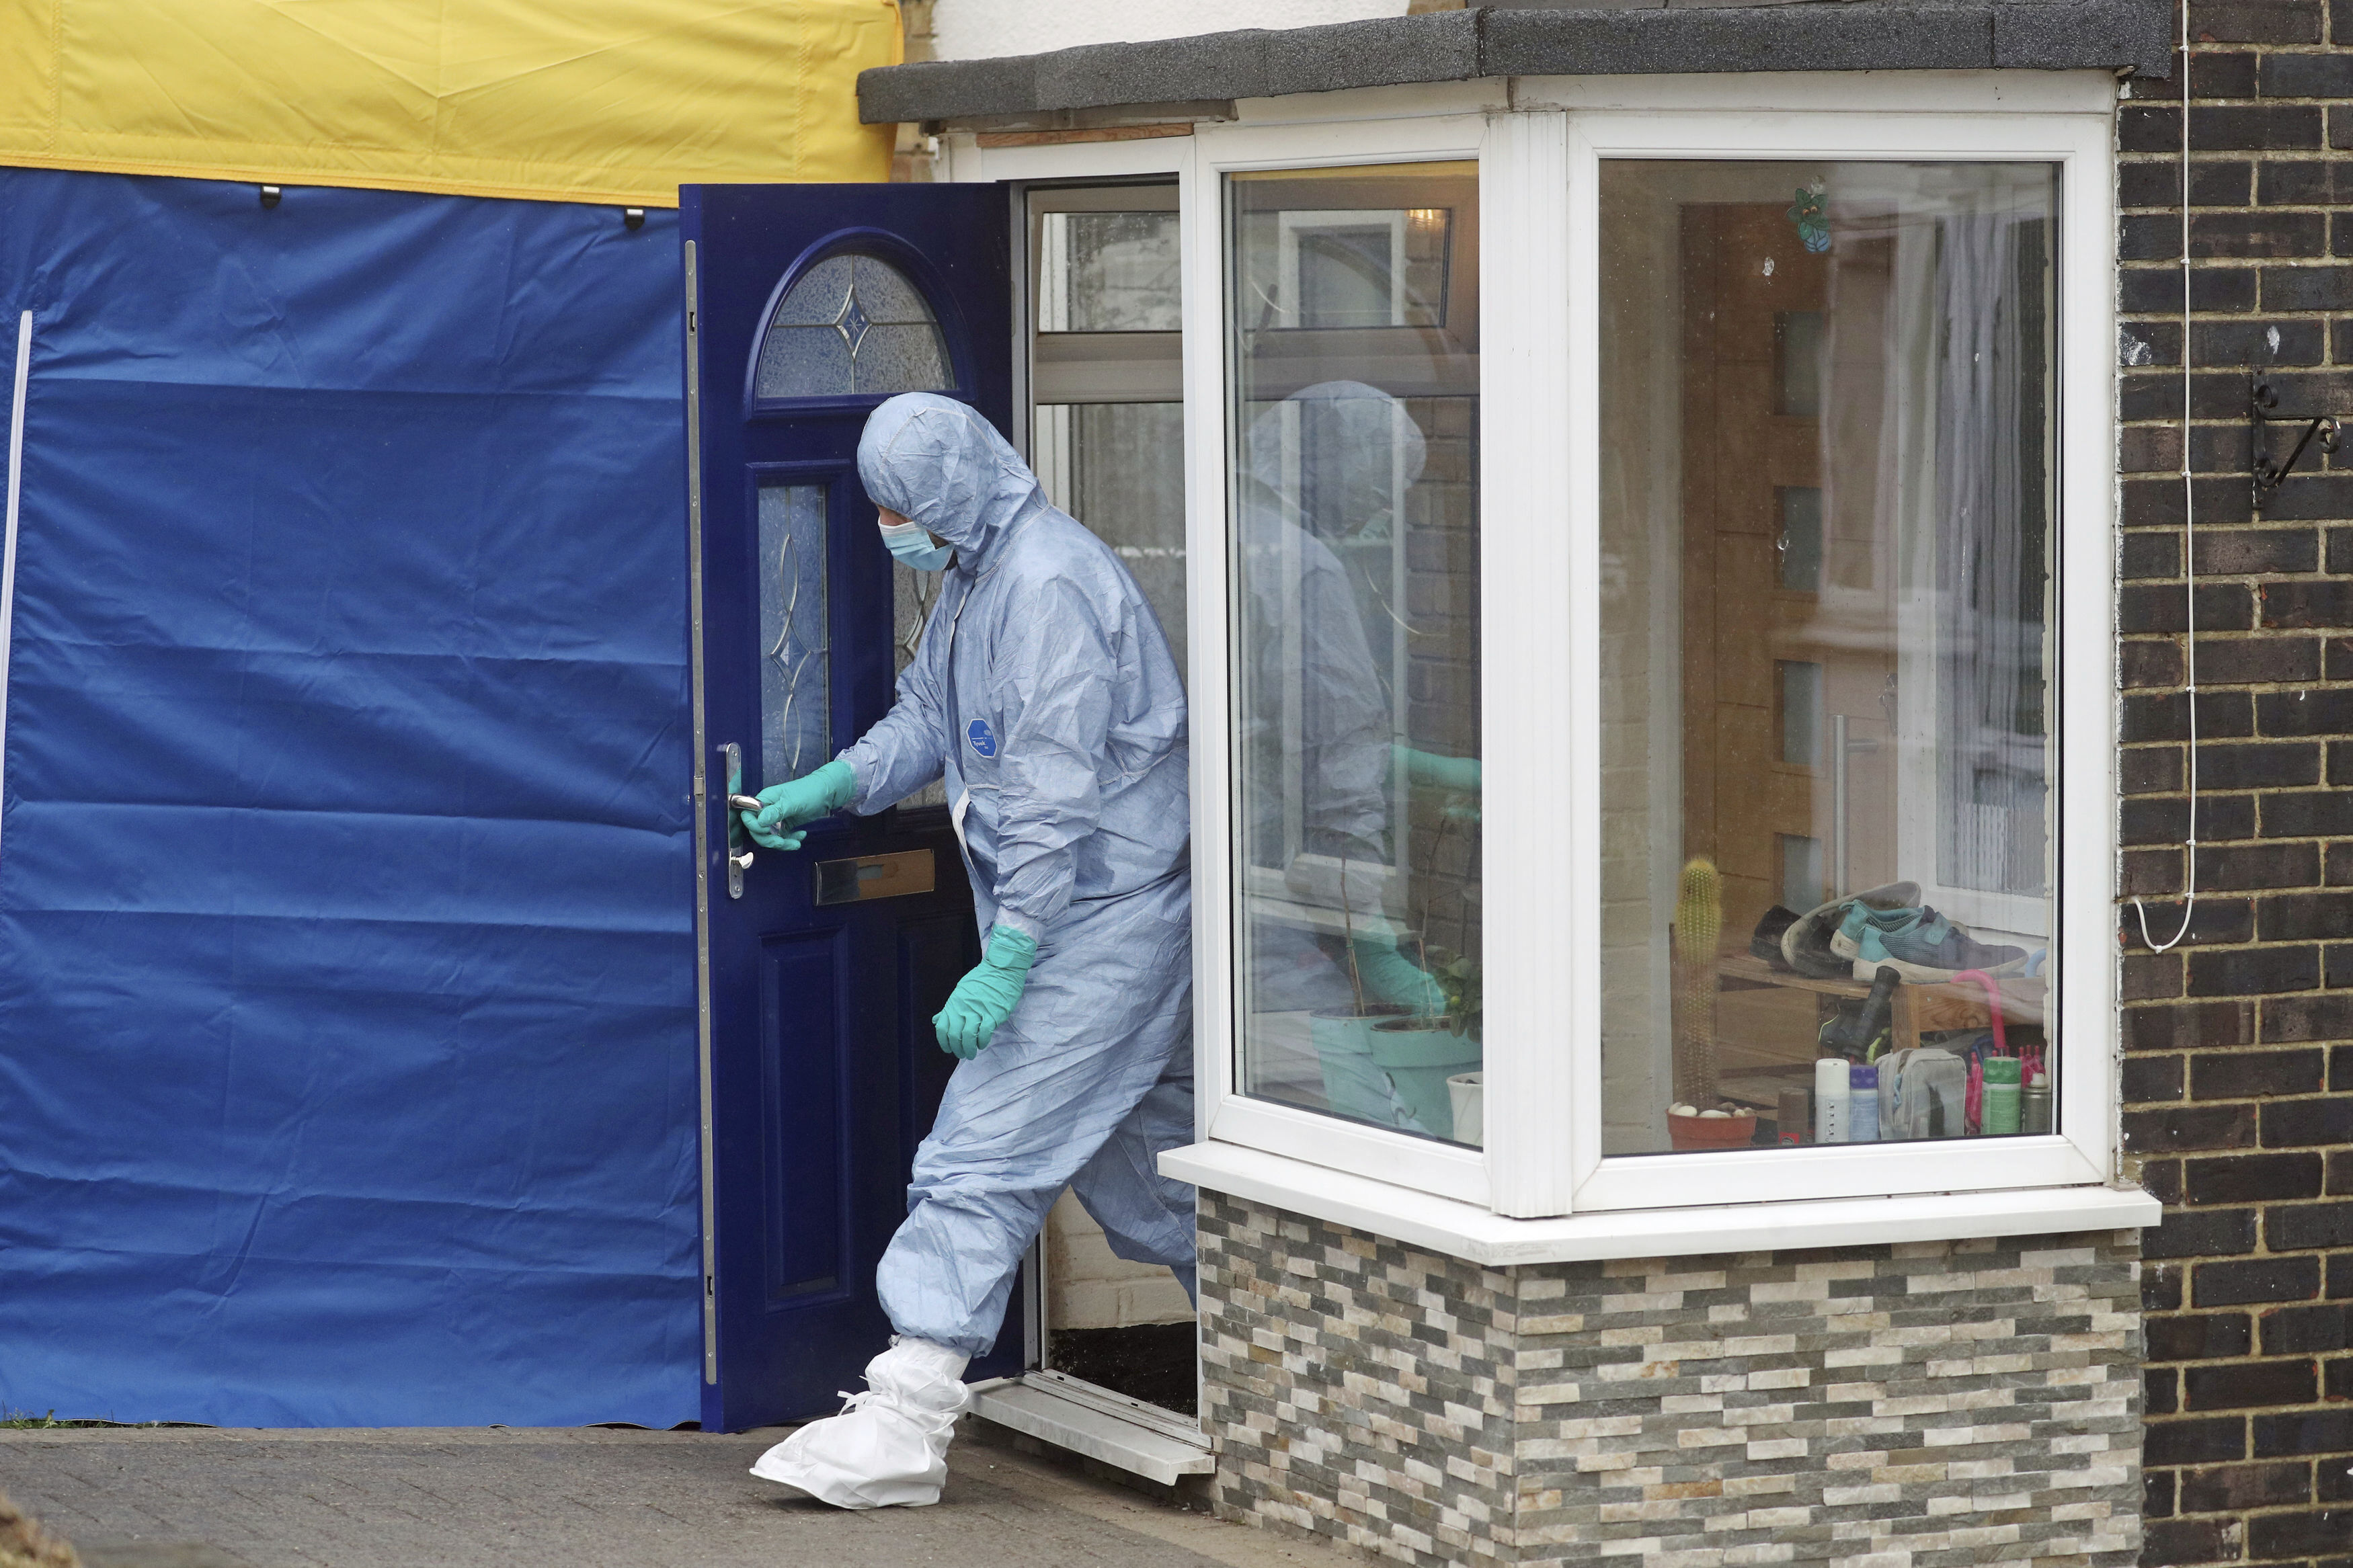 """<p>A forensic officer leaves a house in Freemens Way, in connection with missing woman Sarah Everard, in Deal, England, Wednesday March 10, 2021. Britain's Metropolitan police says an officer has been arrested in connection with the case of a woman who went missing in London last week. The force said the fact that the man is a serving police officer is """"shocking and deeply disturbing."""" Police said the officer was arrested late Tuesday in Kent, southeast of London, as part of the investigation into the disappearance of Sarah Everard. (Steve Parsons/PA via AP)</p>"""